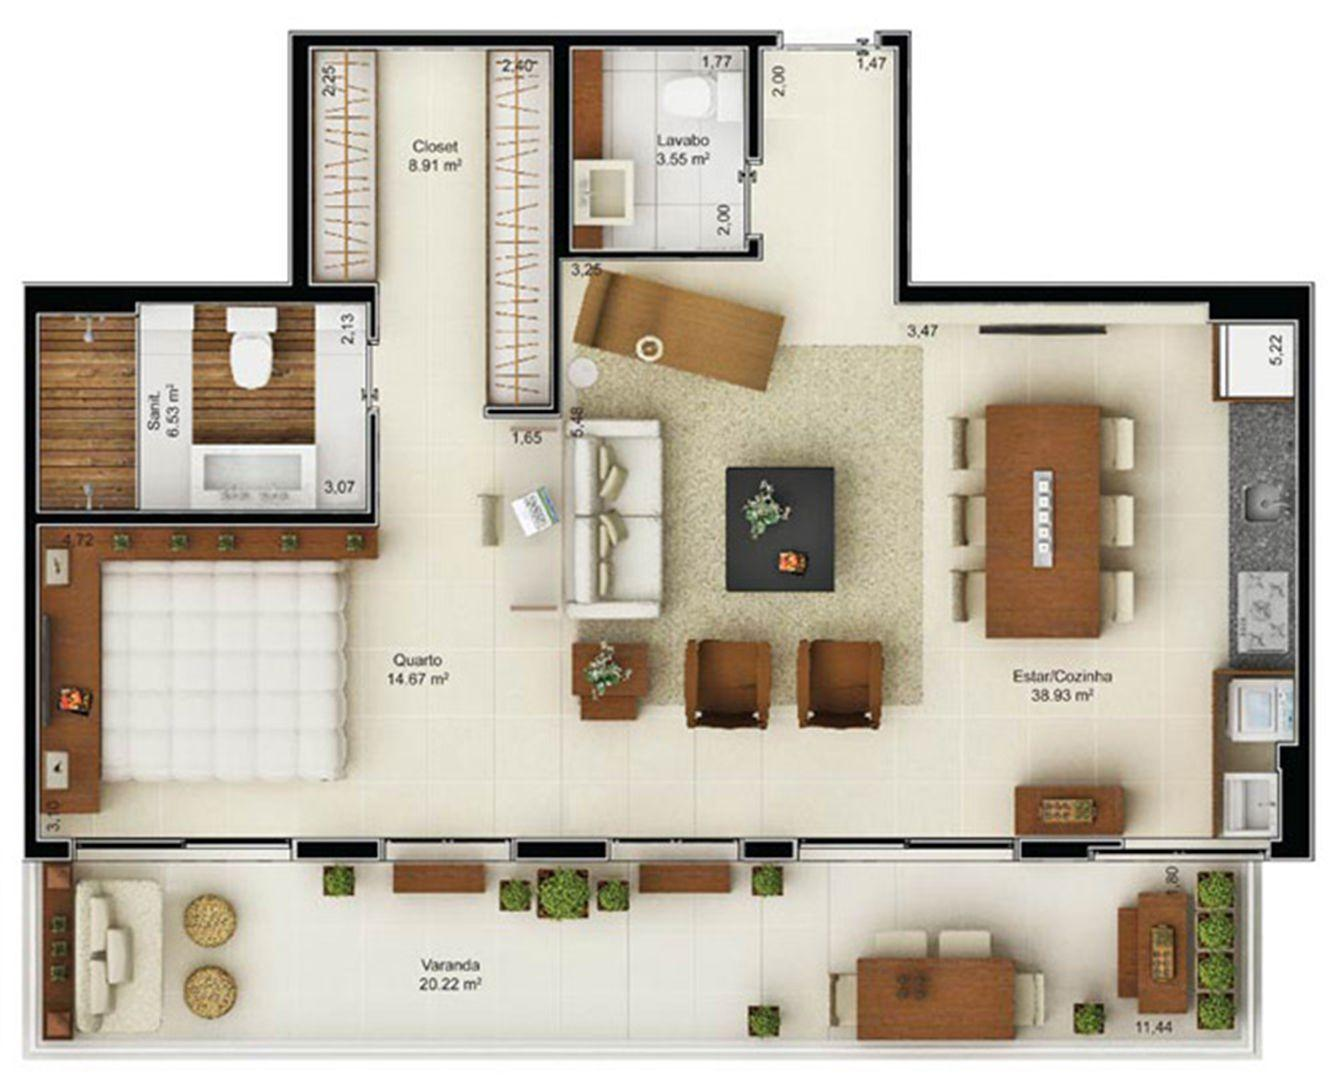 Planta Loft 92,81 m² | Mandarim Salvador Shopping – Apartamento no  Ao lado do Salvador Shopping - Salvador - Bahia